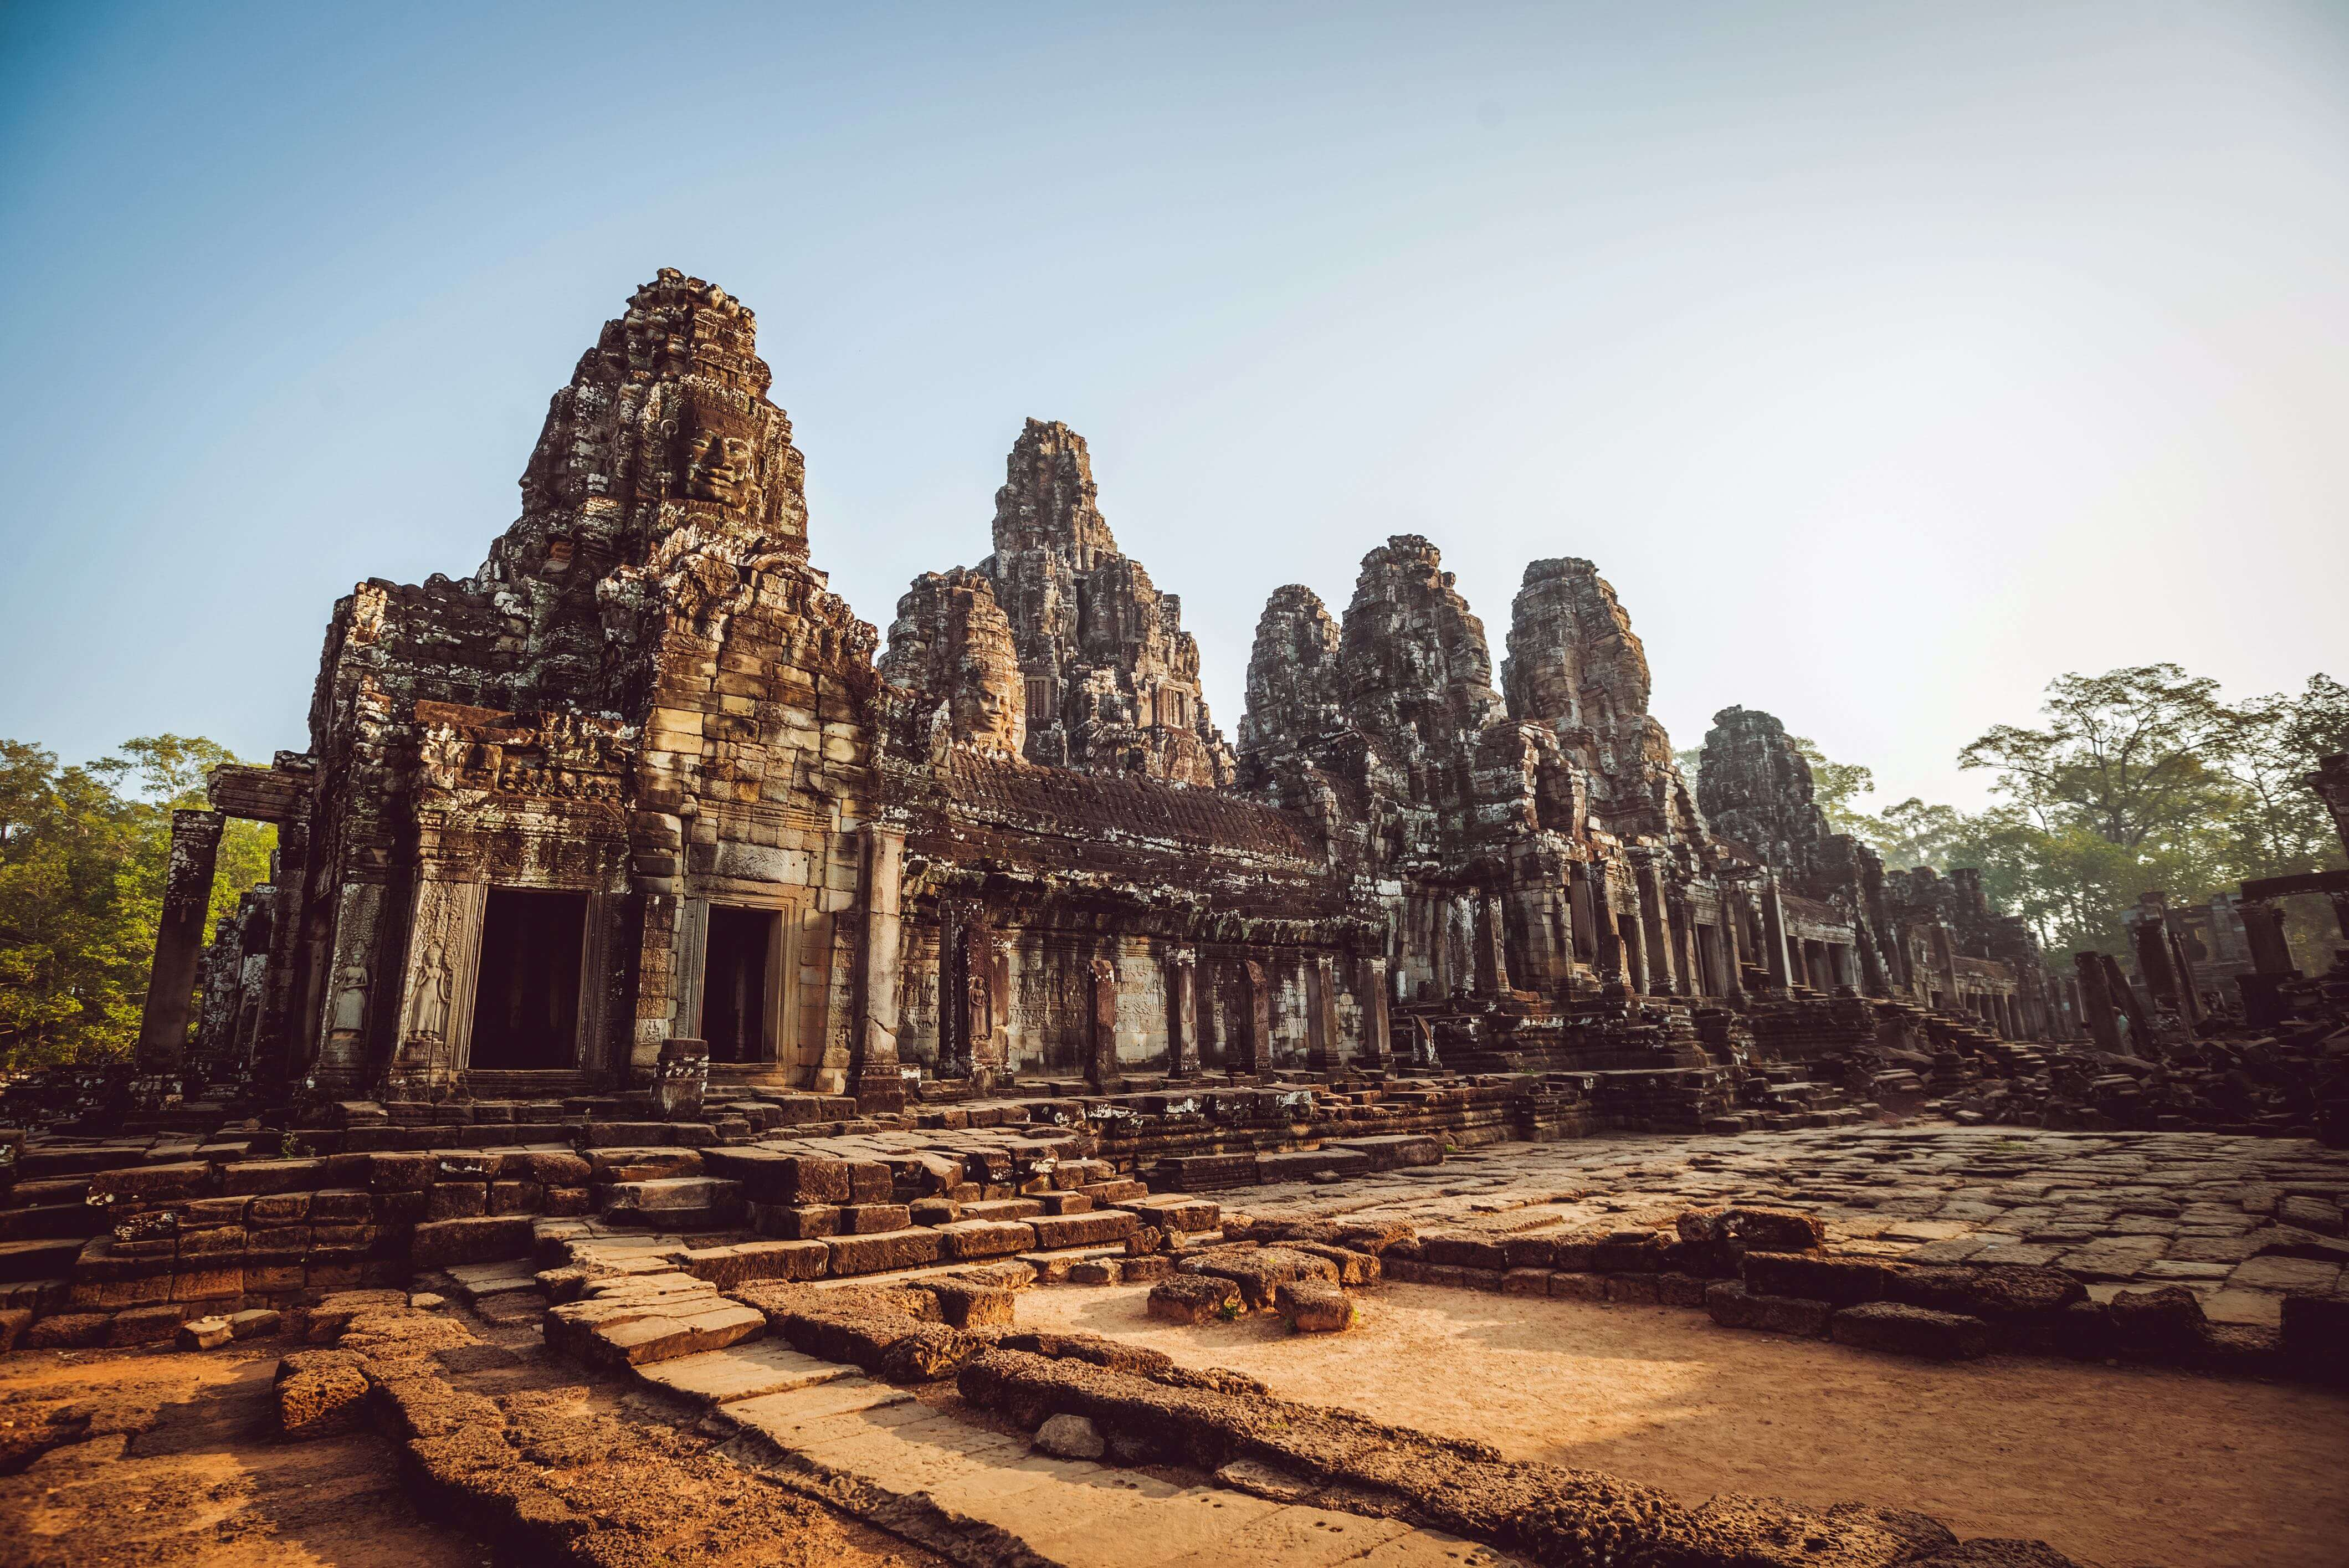 Bayon is an ornately decorated 12th century Khmer temple in Angkor, Cambodia.